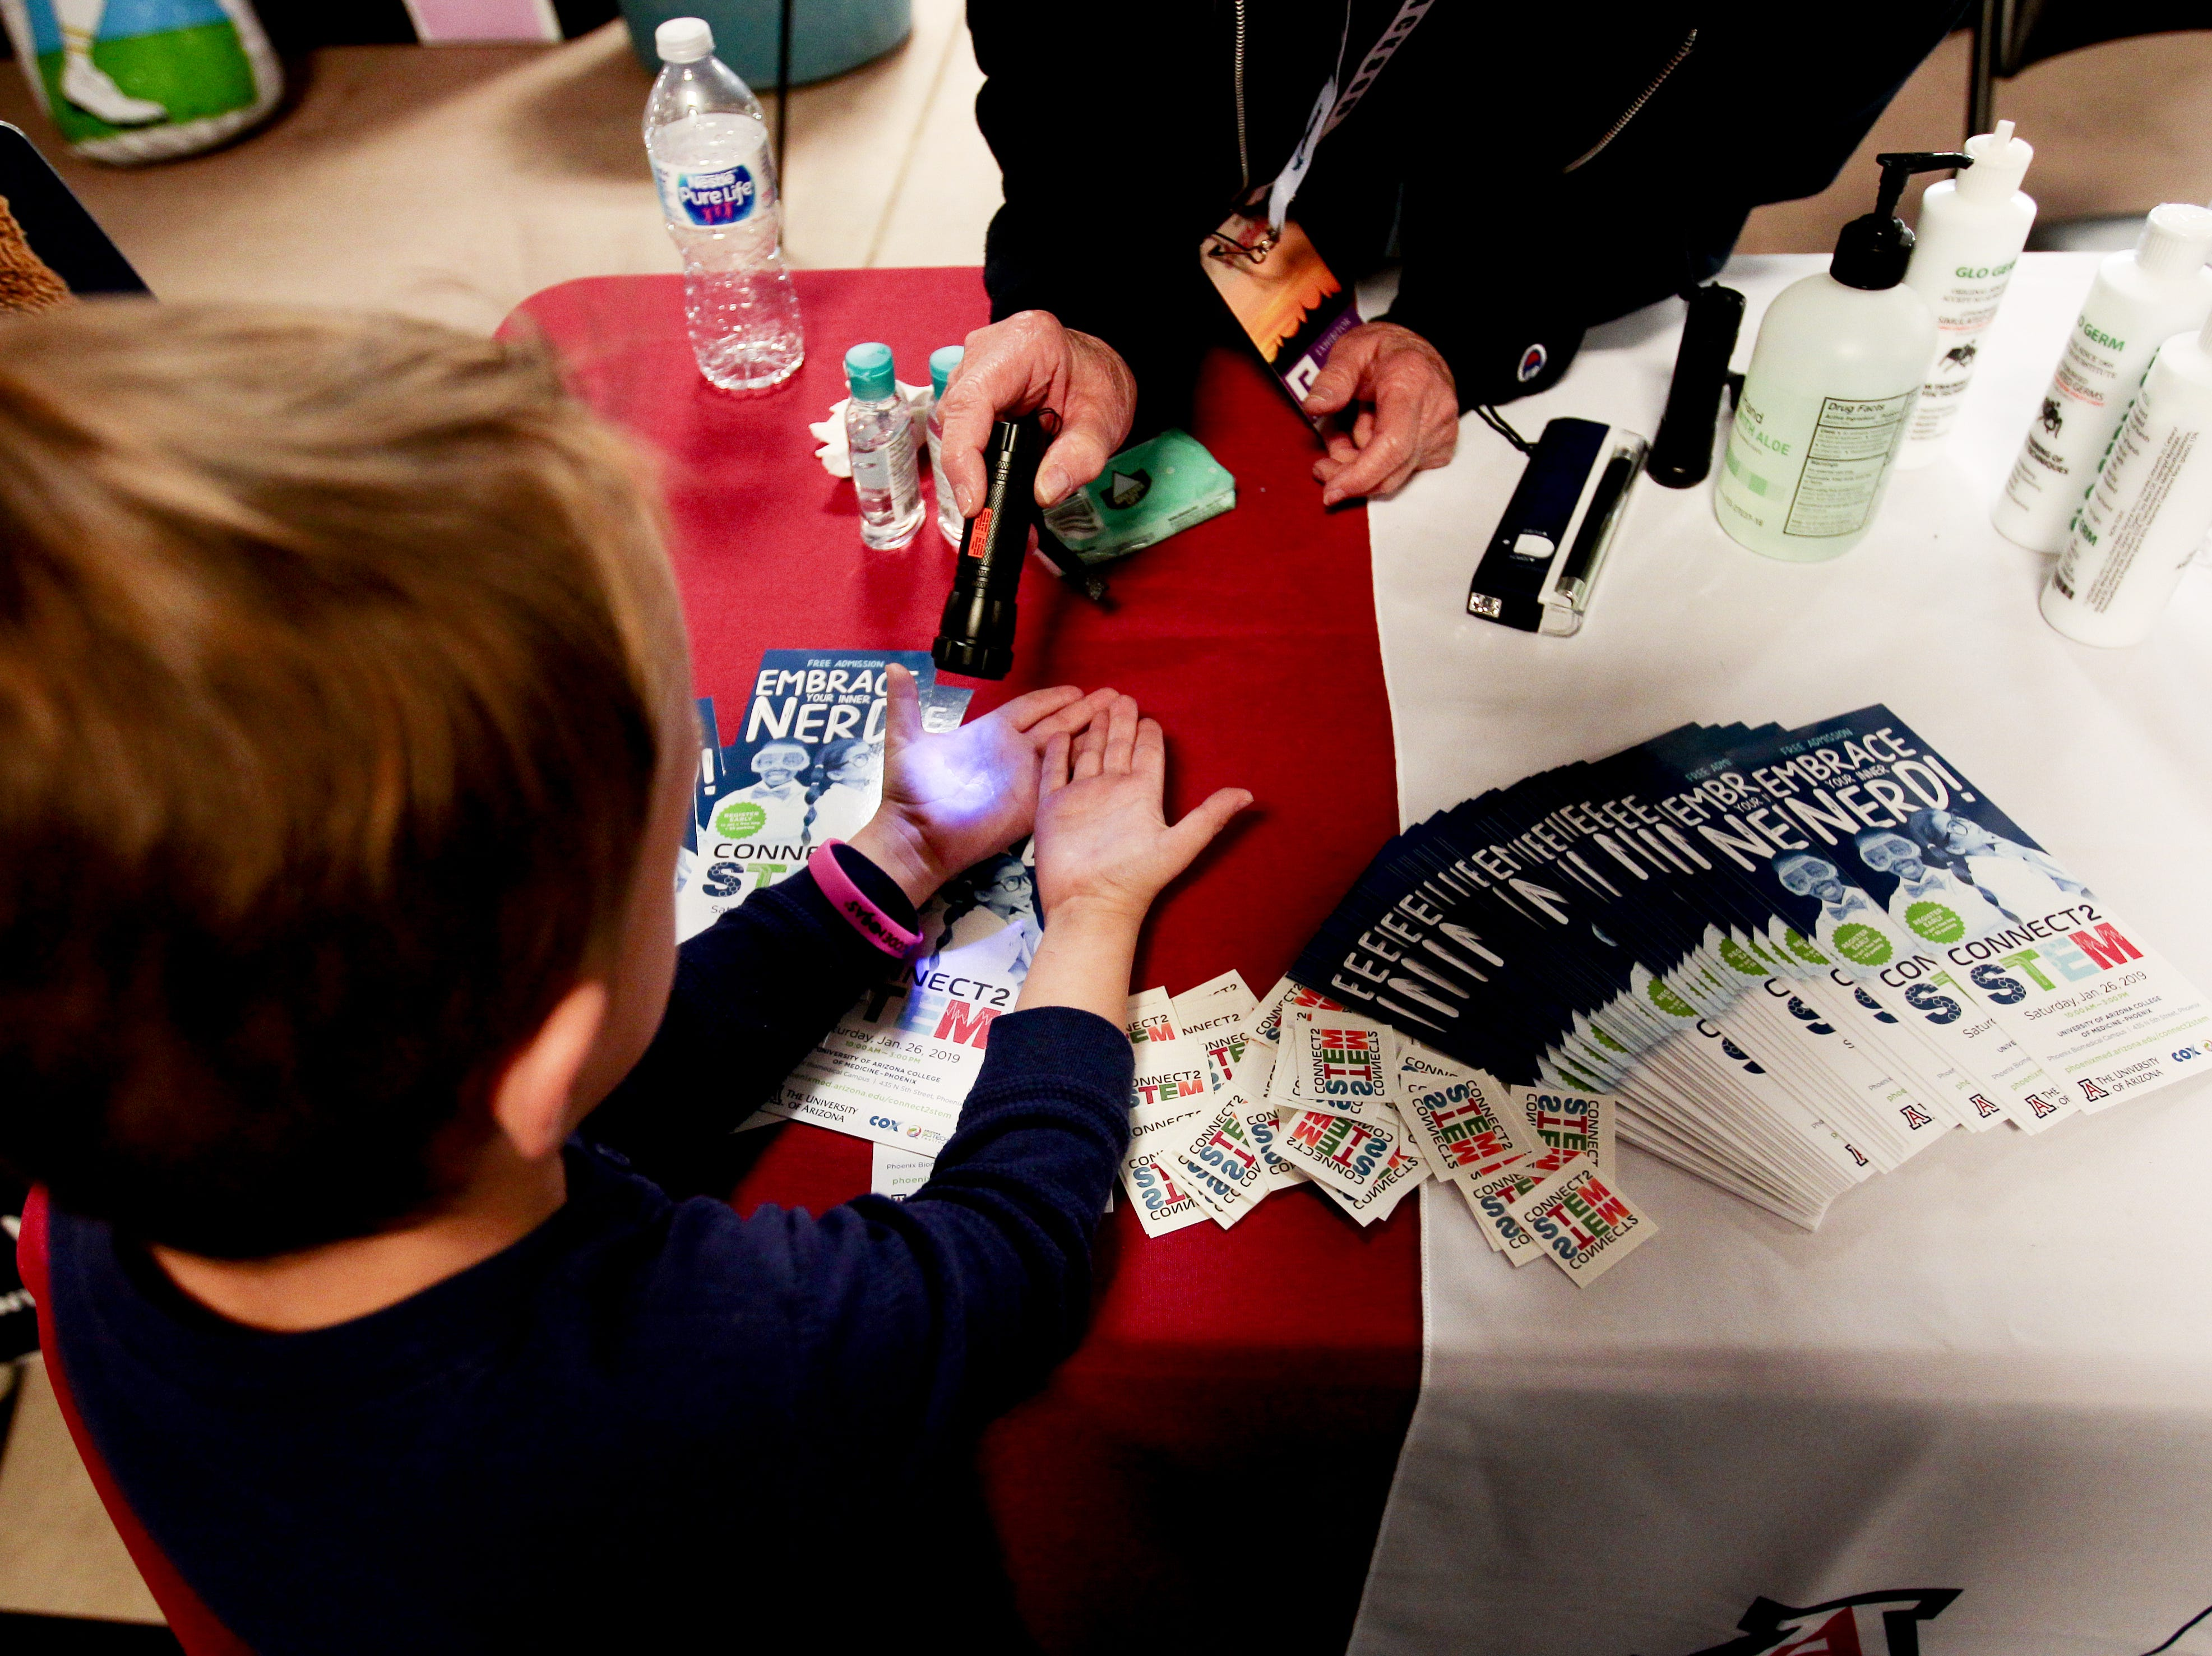 Leo Breen-Harris, 5, has his hands scan with a light to expose germs at a stand run by students from the University of Arizona College of Medicine in the kids area of the Barrett-Jackson Car Auction on Jan. 12.